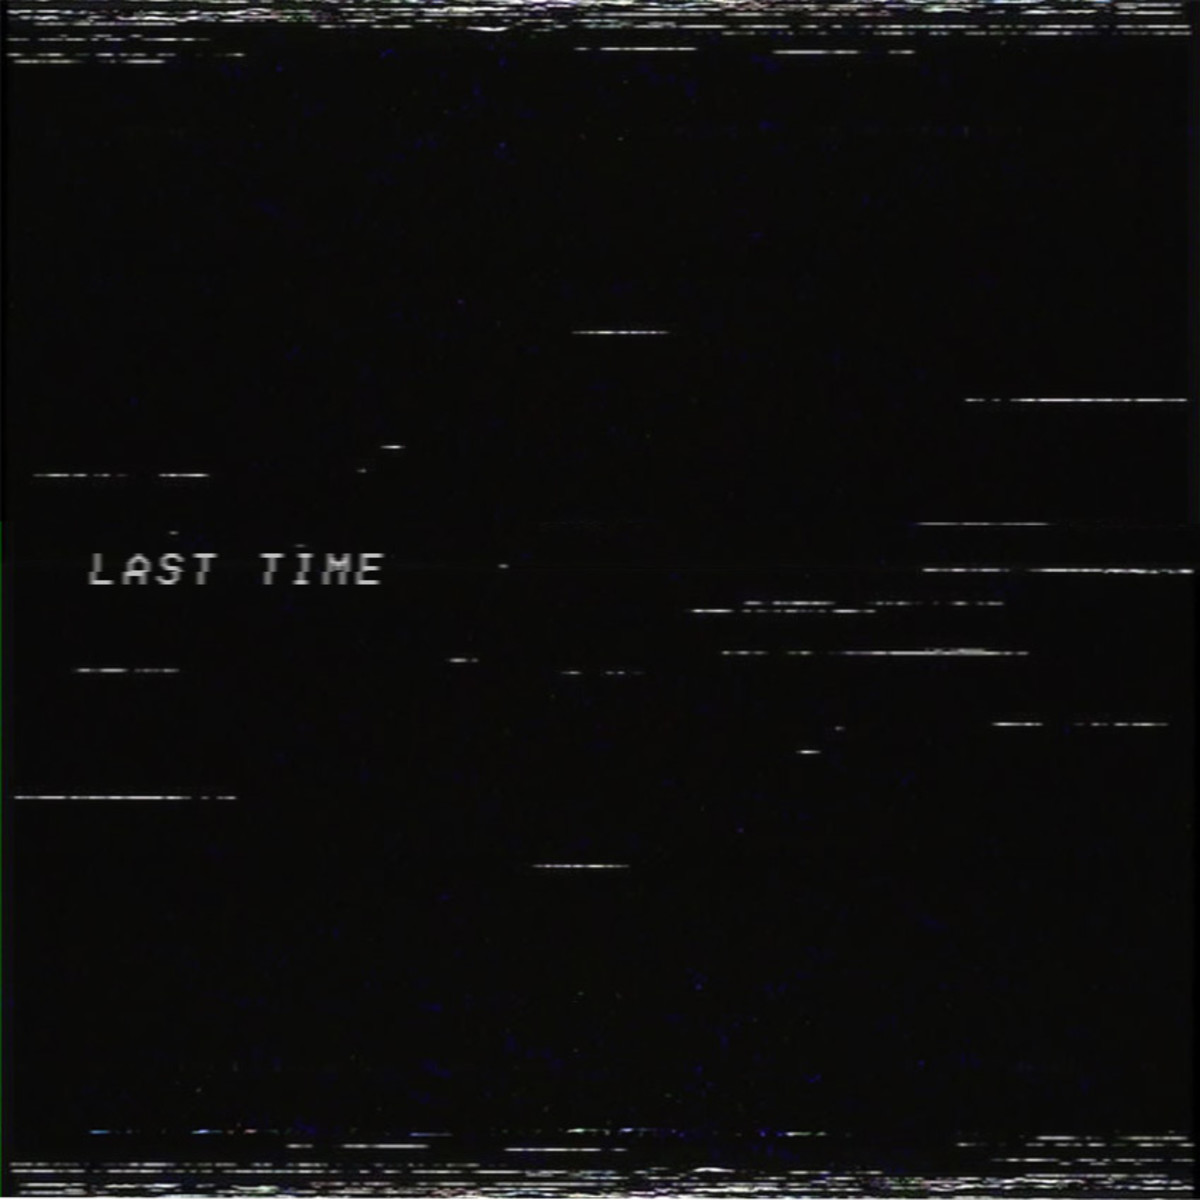 synth-single-review-last-time-by-the-last-days-of-november